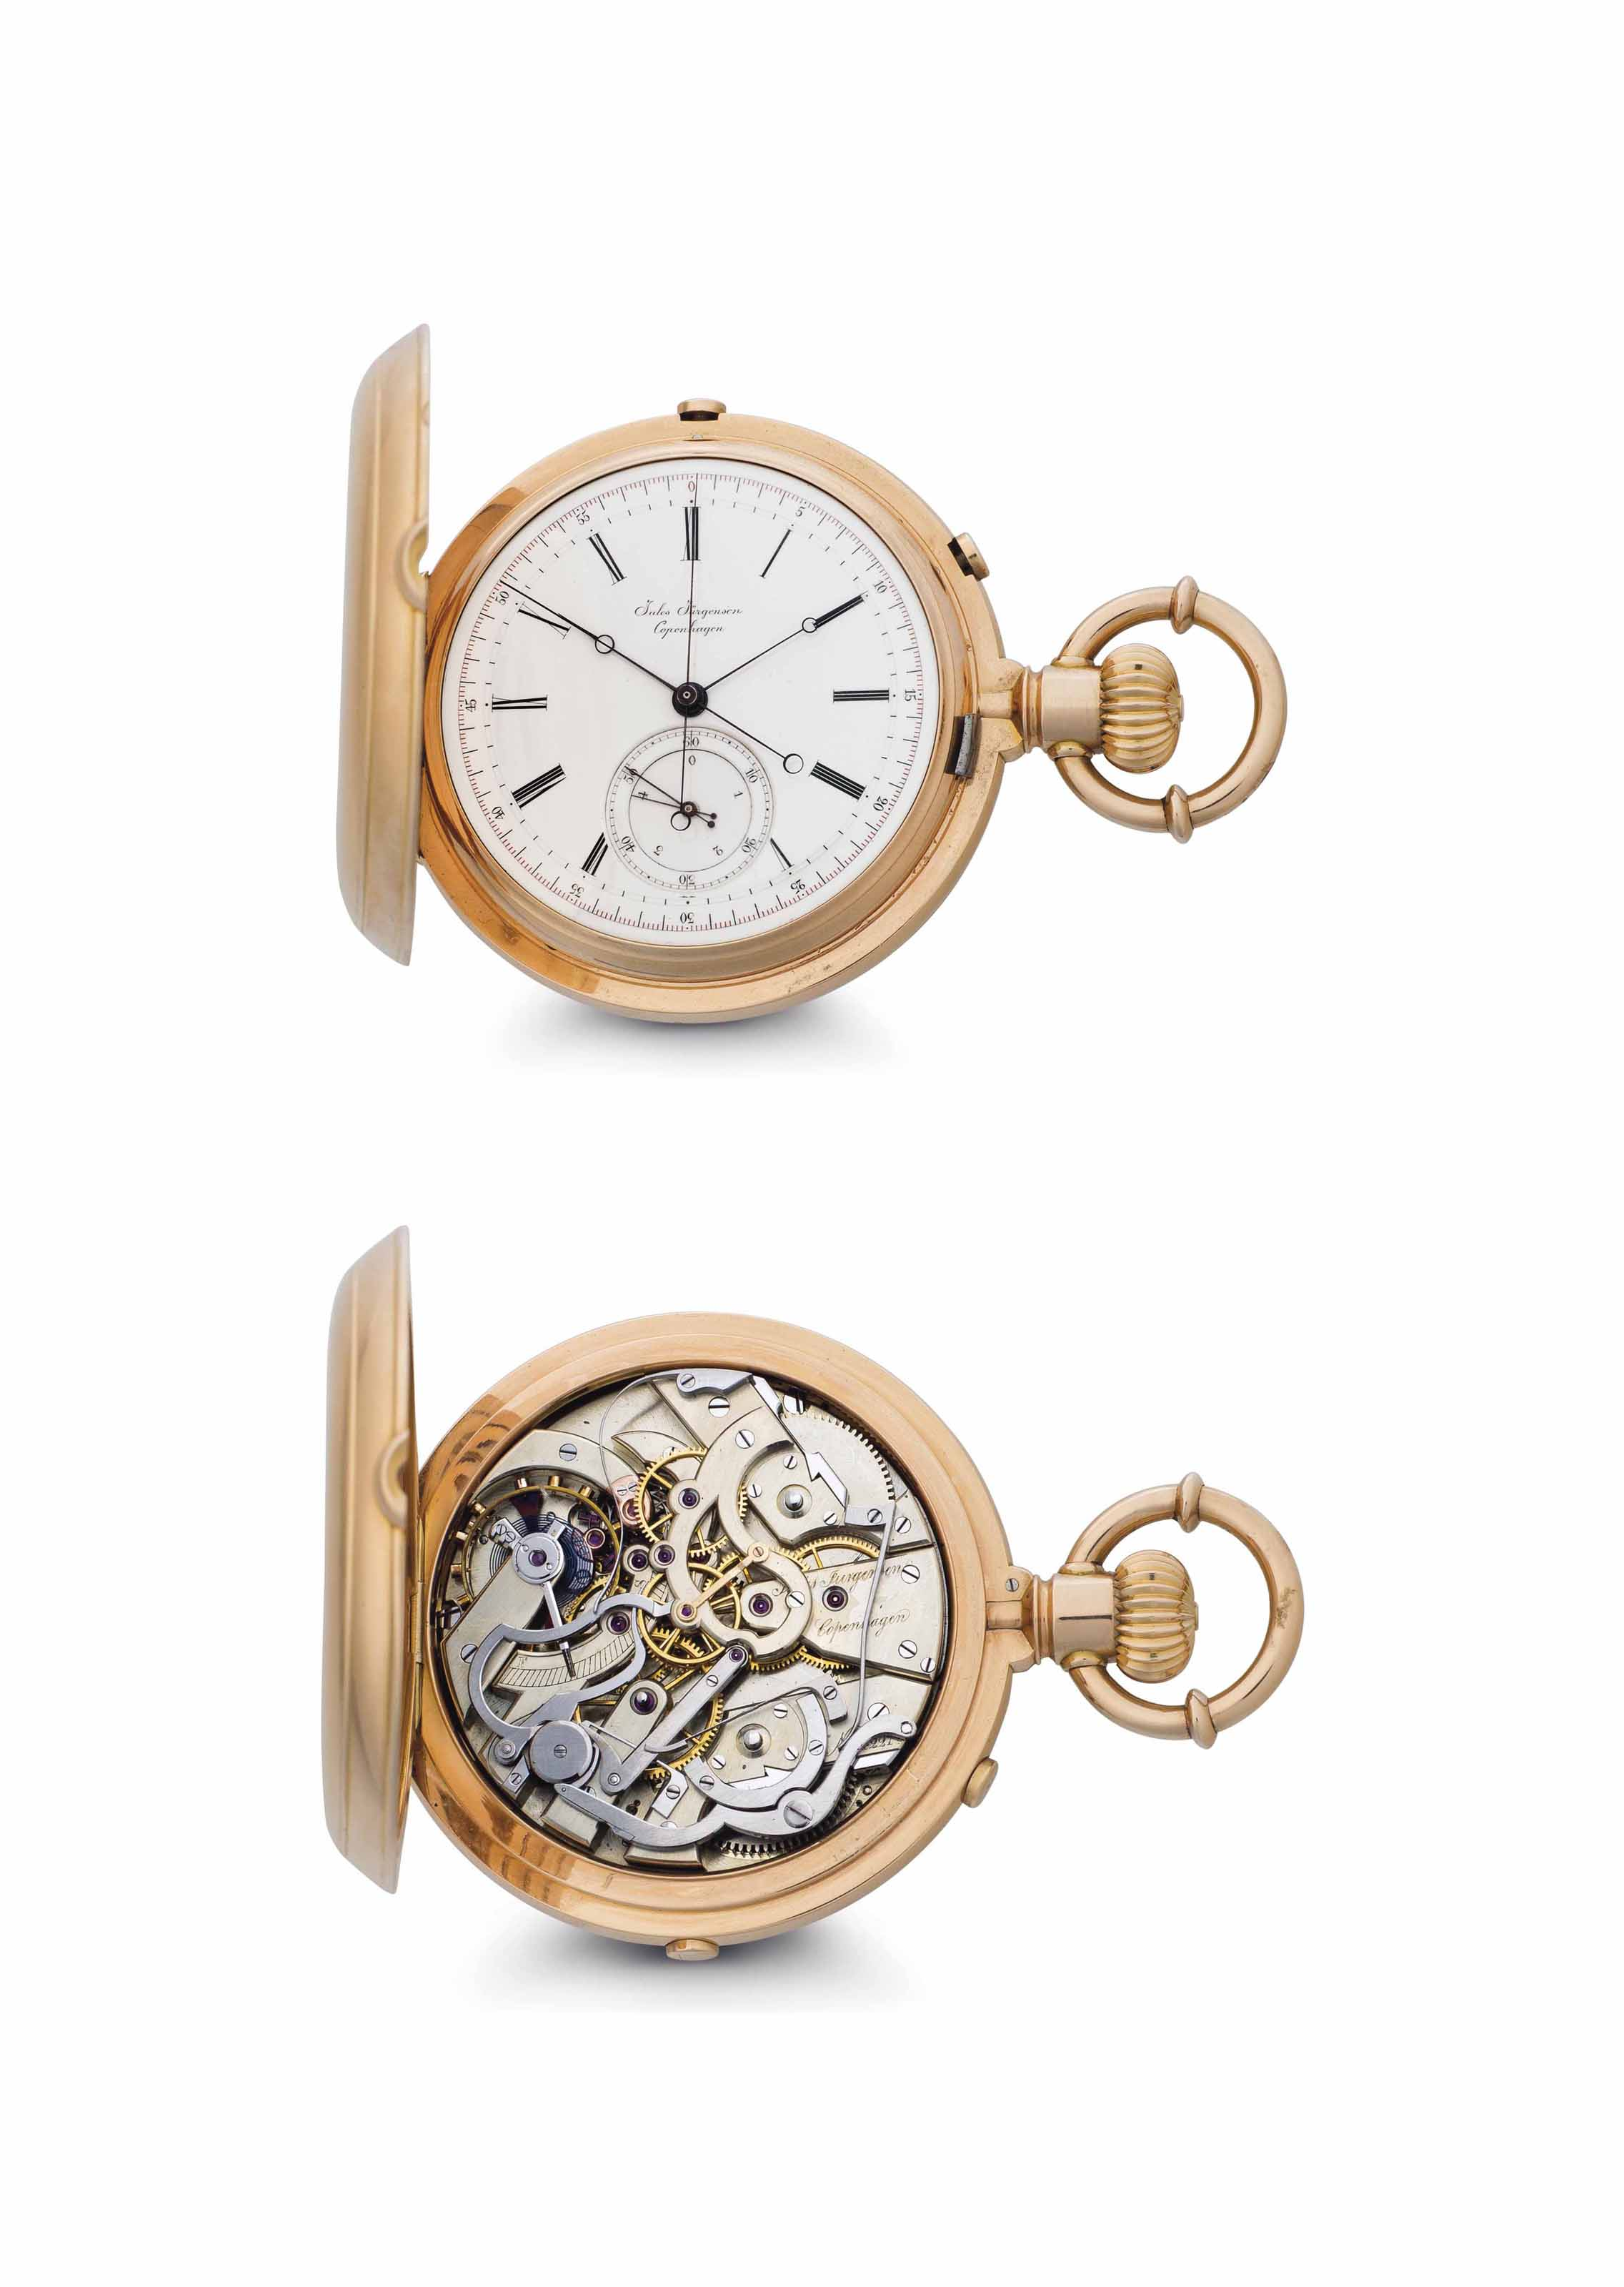 Jules Jürgensen. A Fine and Rare 18k Pink Gold Hunter Case Two-Train Keyless Lever Split-Seconds Chronograph Watch with Jump Fifth Seconds